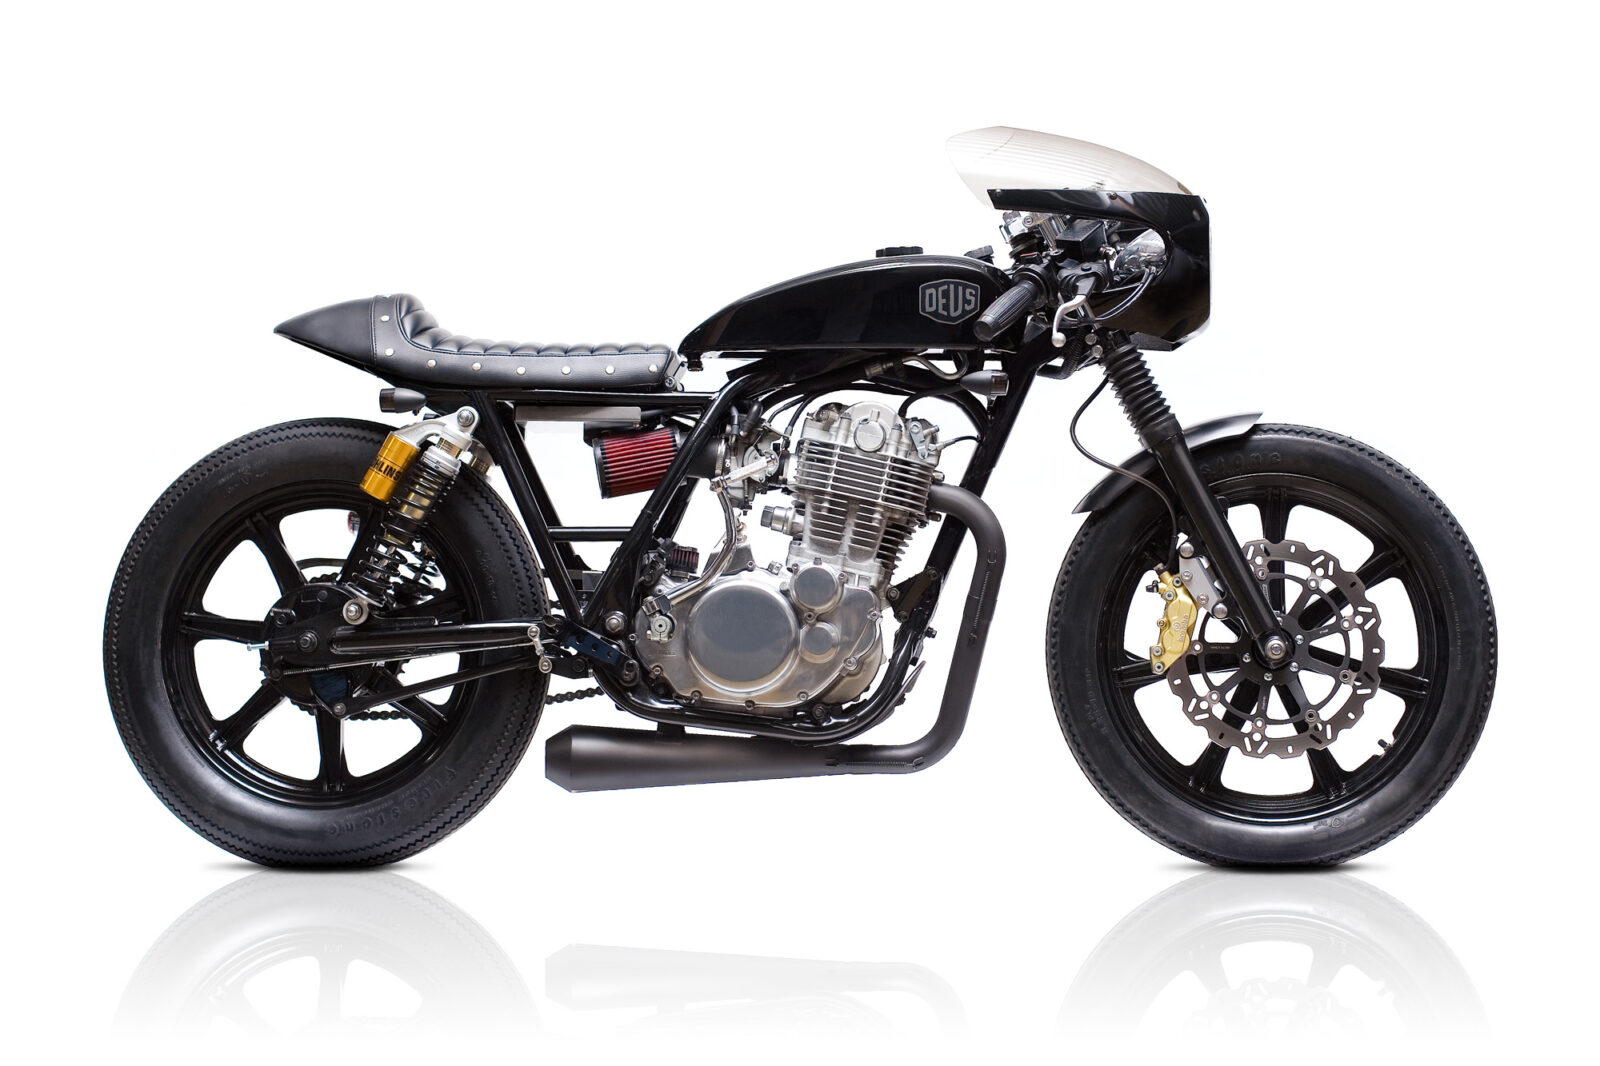 Deus Grievous Angel Yamaha SR400 1 1600x1066 - James May's Yamaha SR400